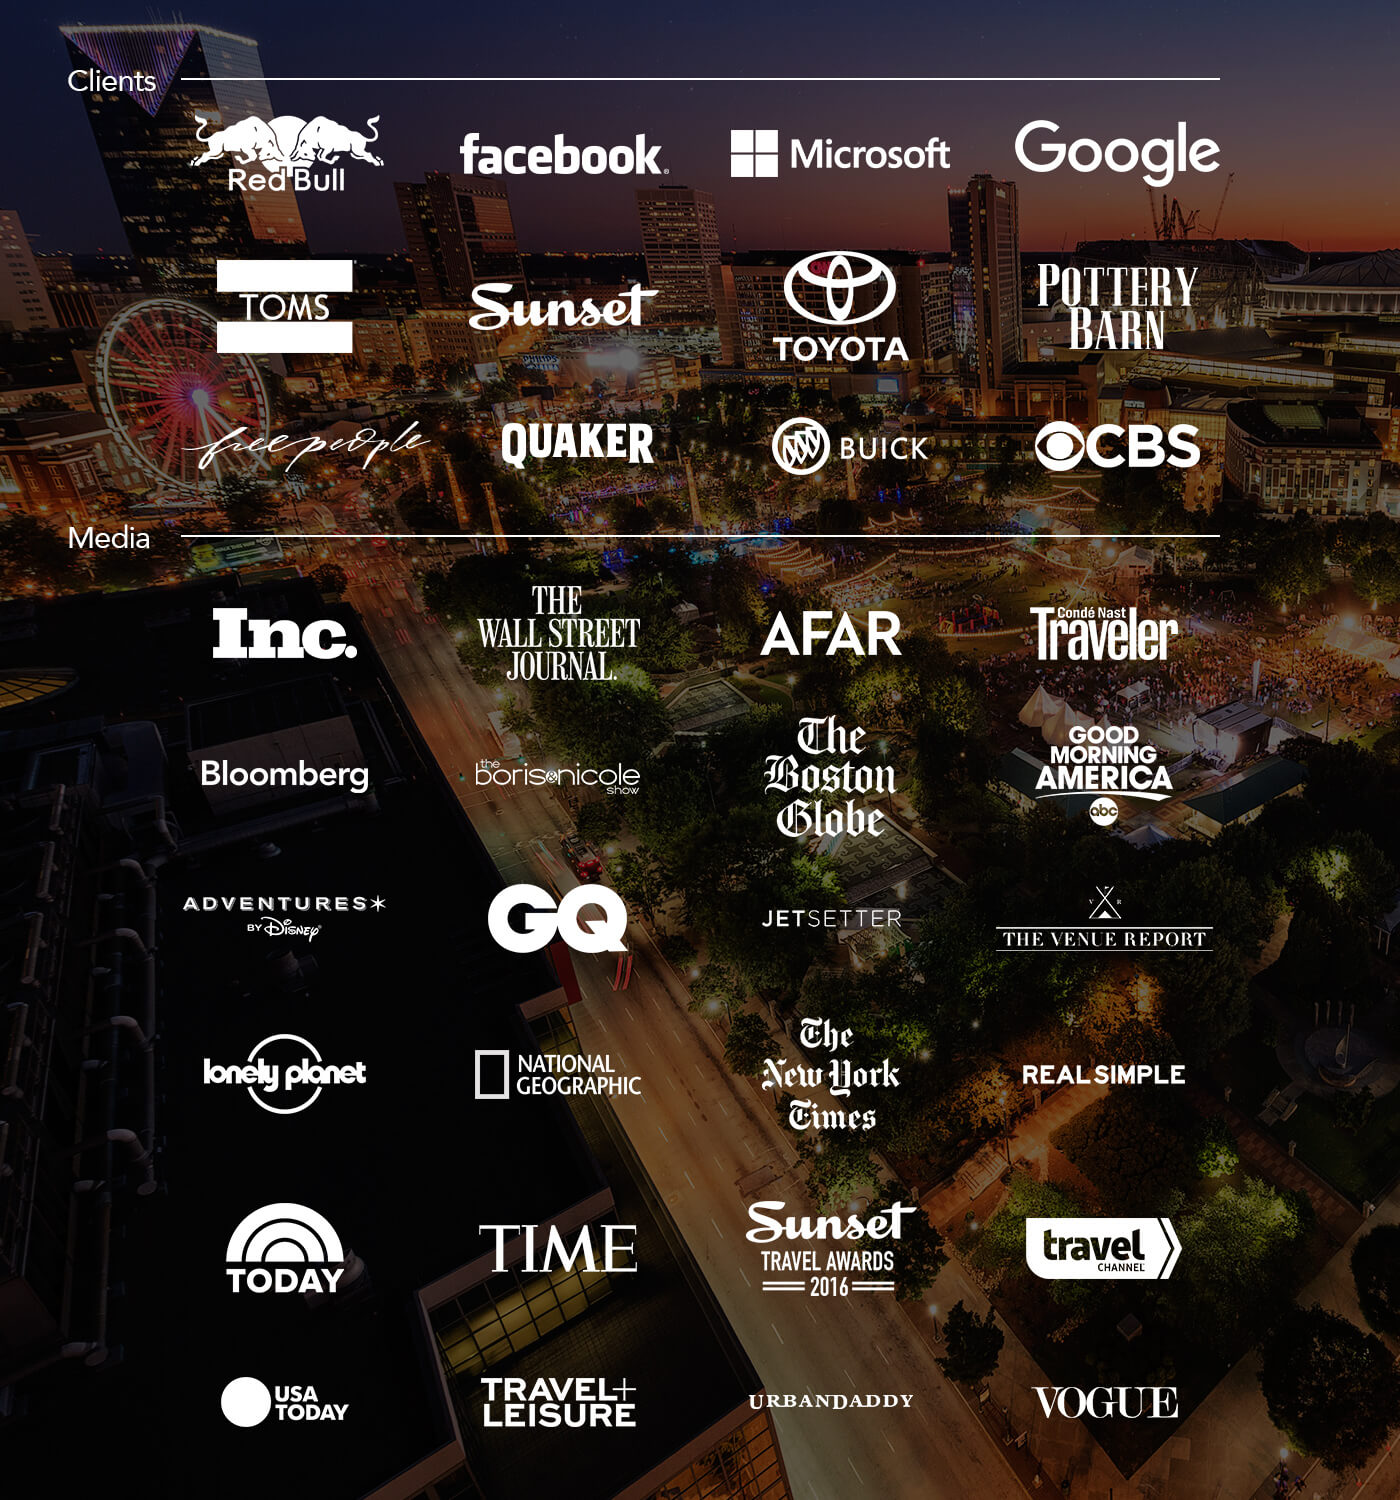 logos of clients and media outlets for under canvas